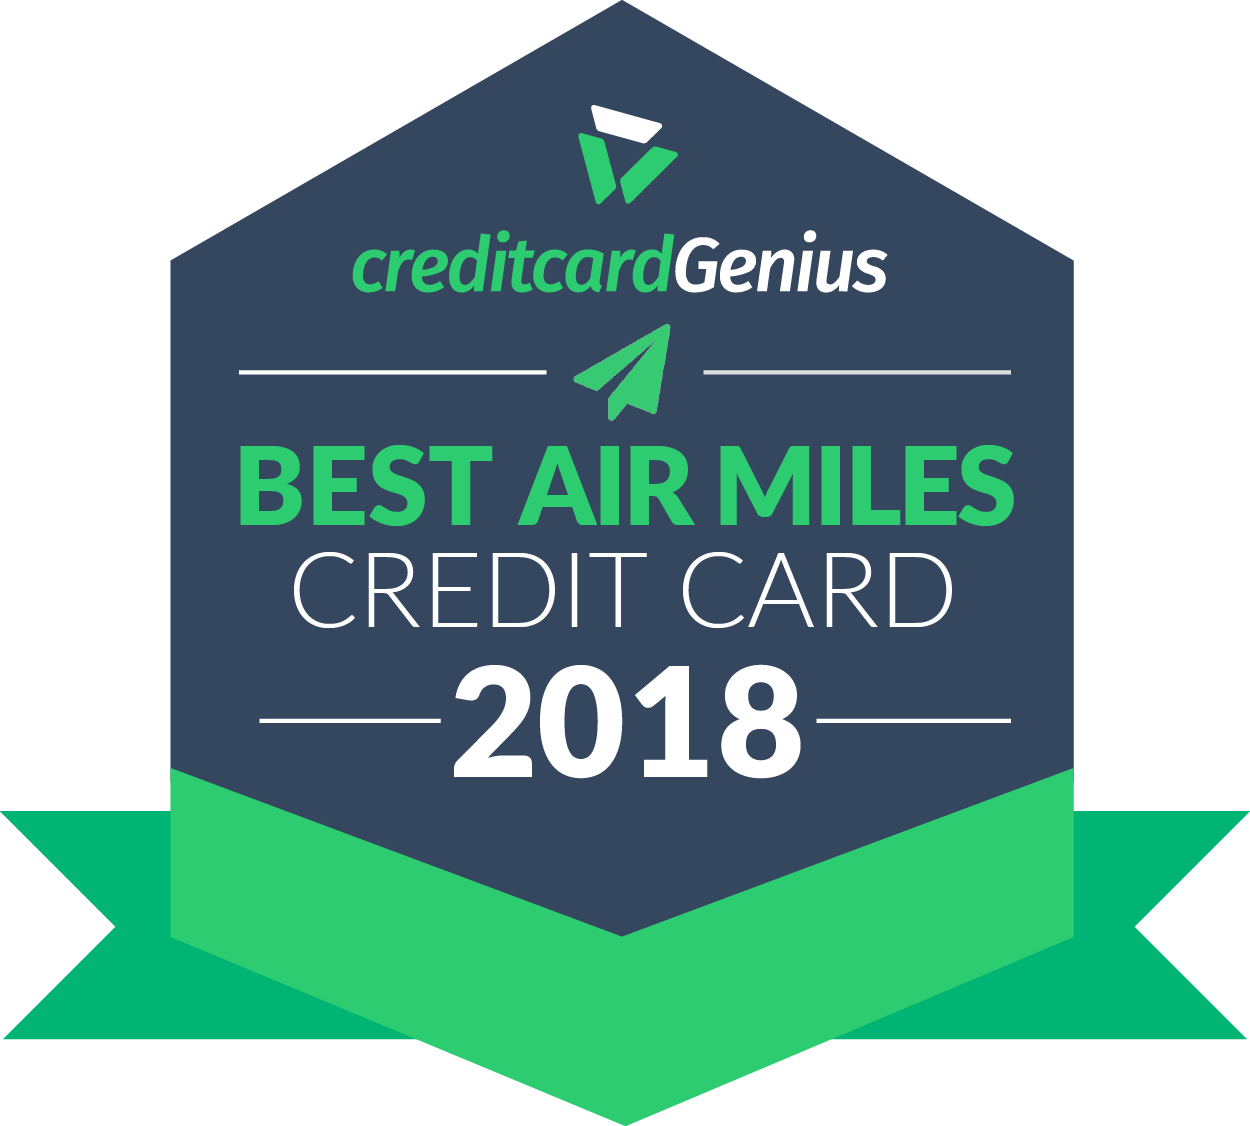 Best Credit Card in Canada for Air Miles 2018